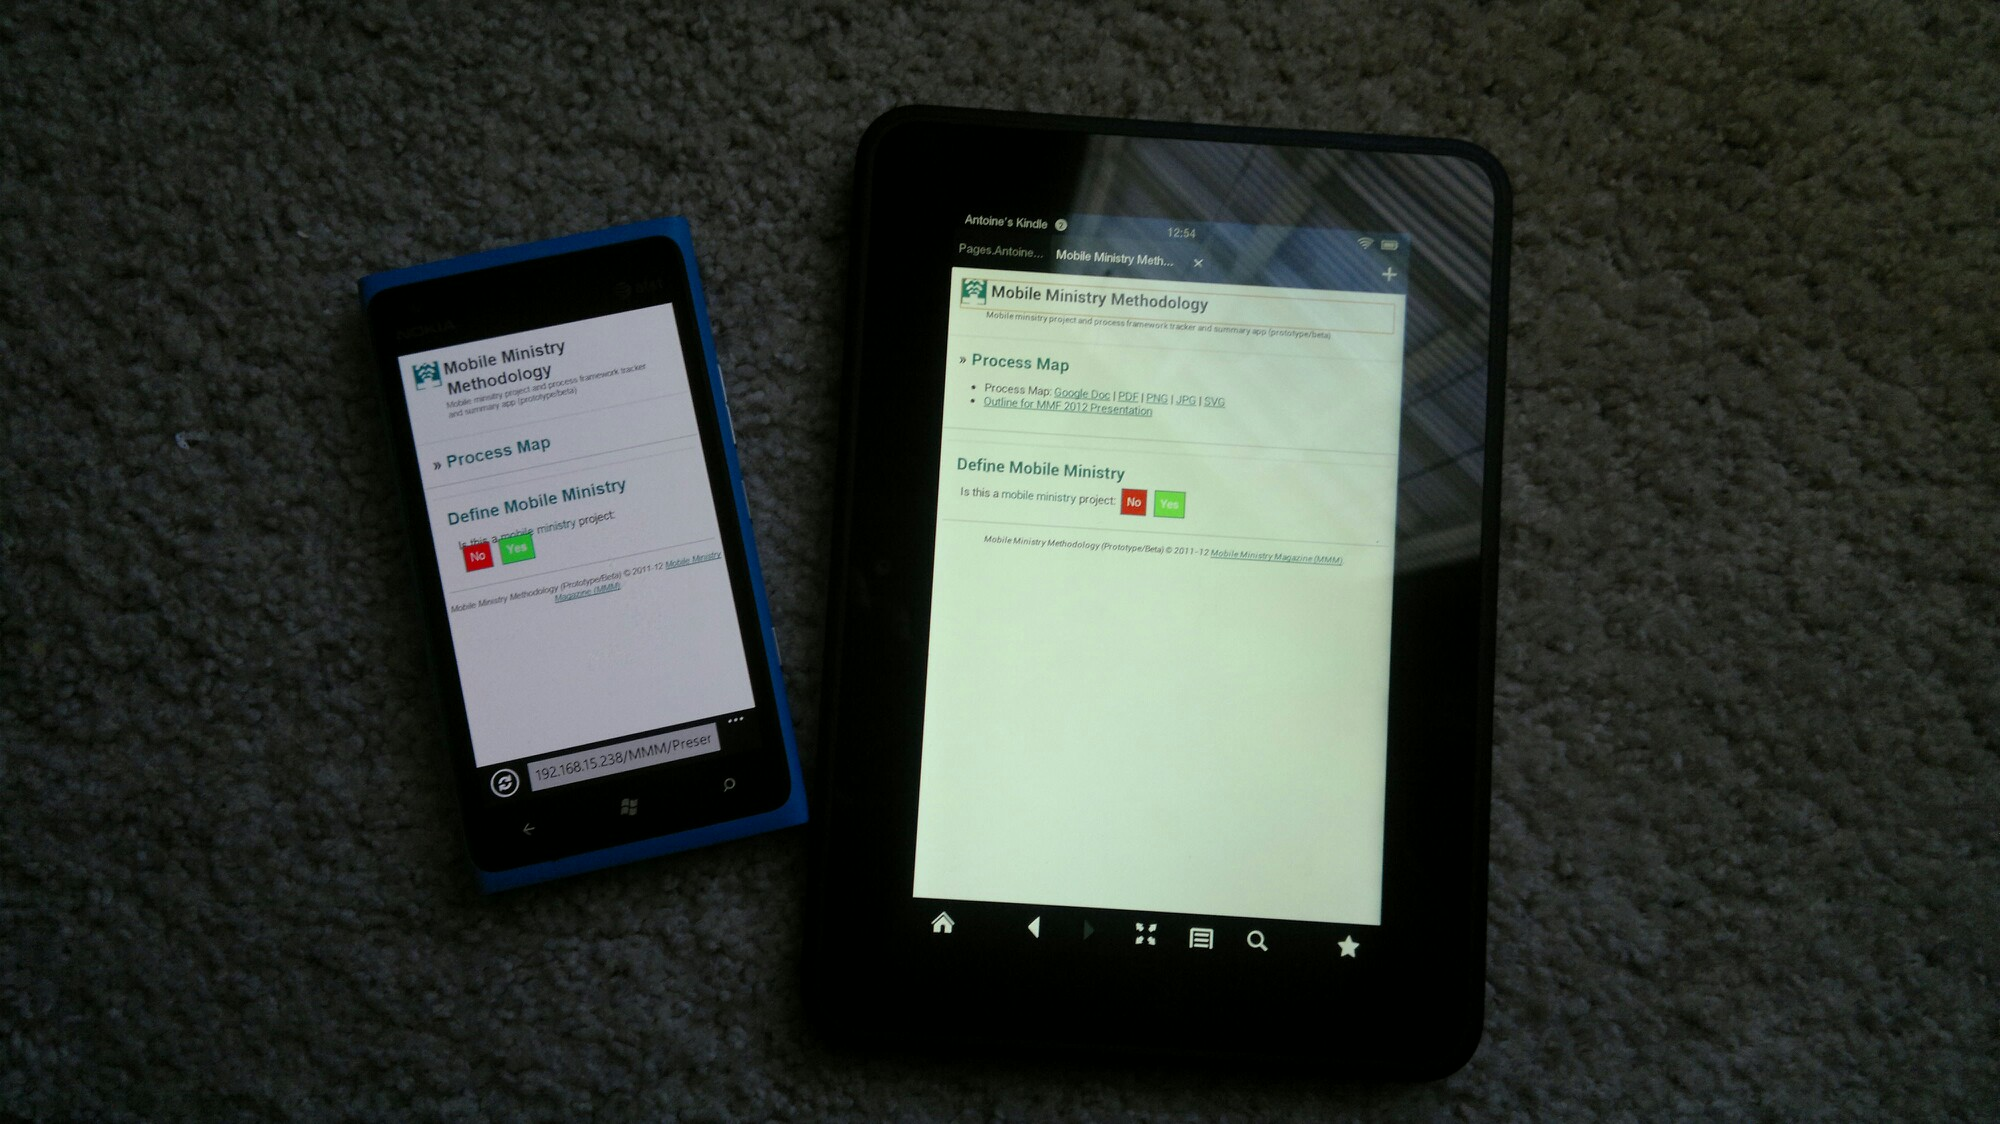 Nokia Lumia 900 and Kindle Fire HD showing Prototype of Mobile Ministry Methodology